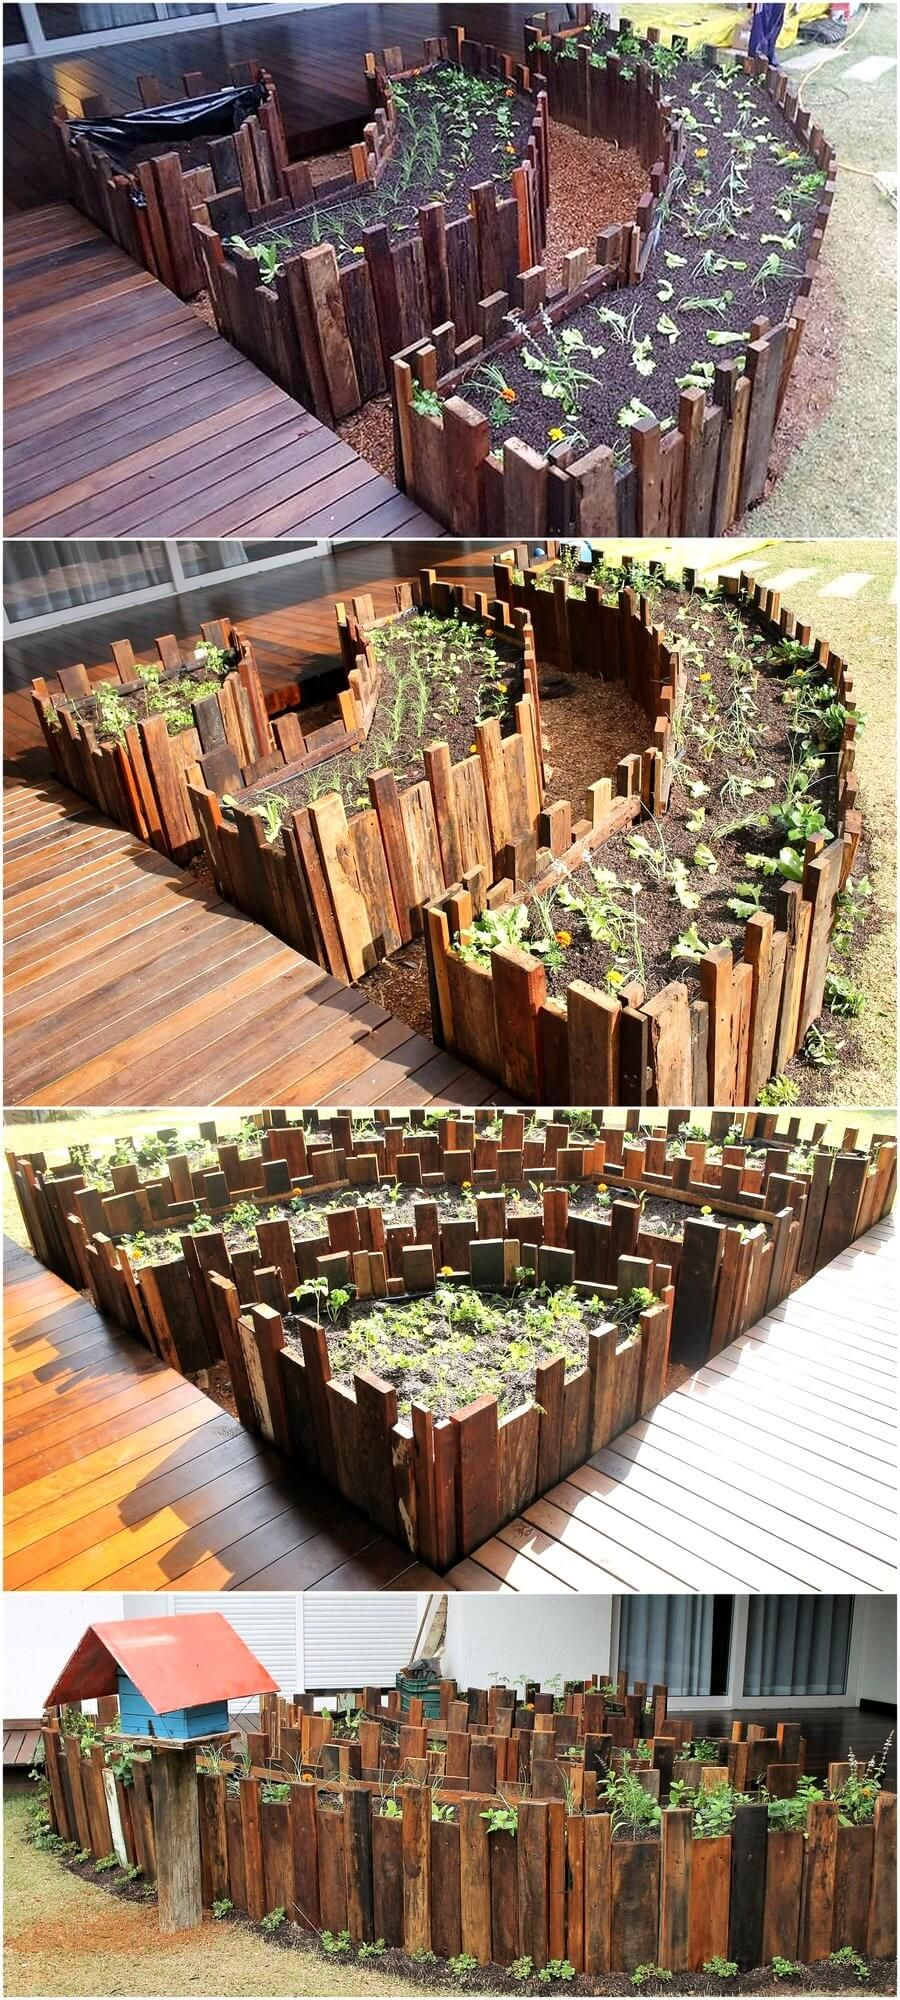 Raised Garden Made By Using Used Pallet Wood #woodpalletfurniture